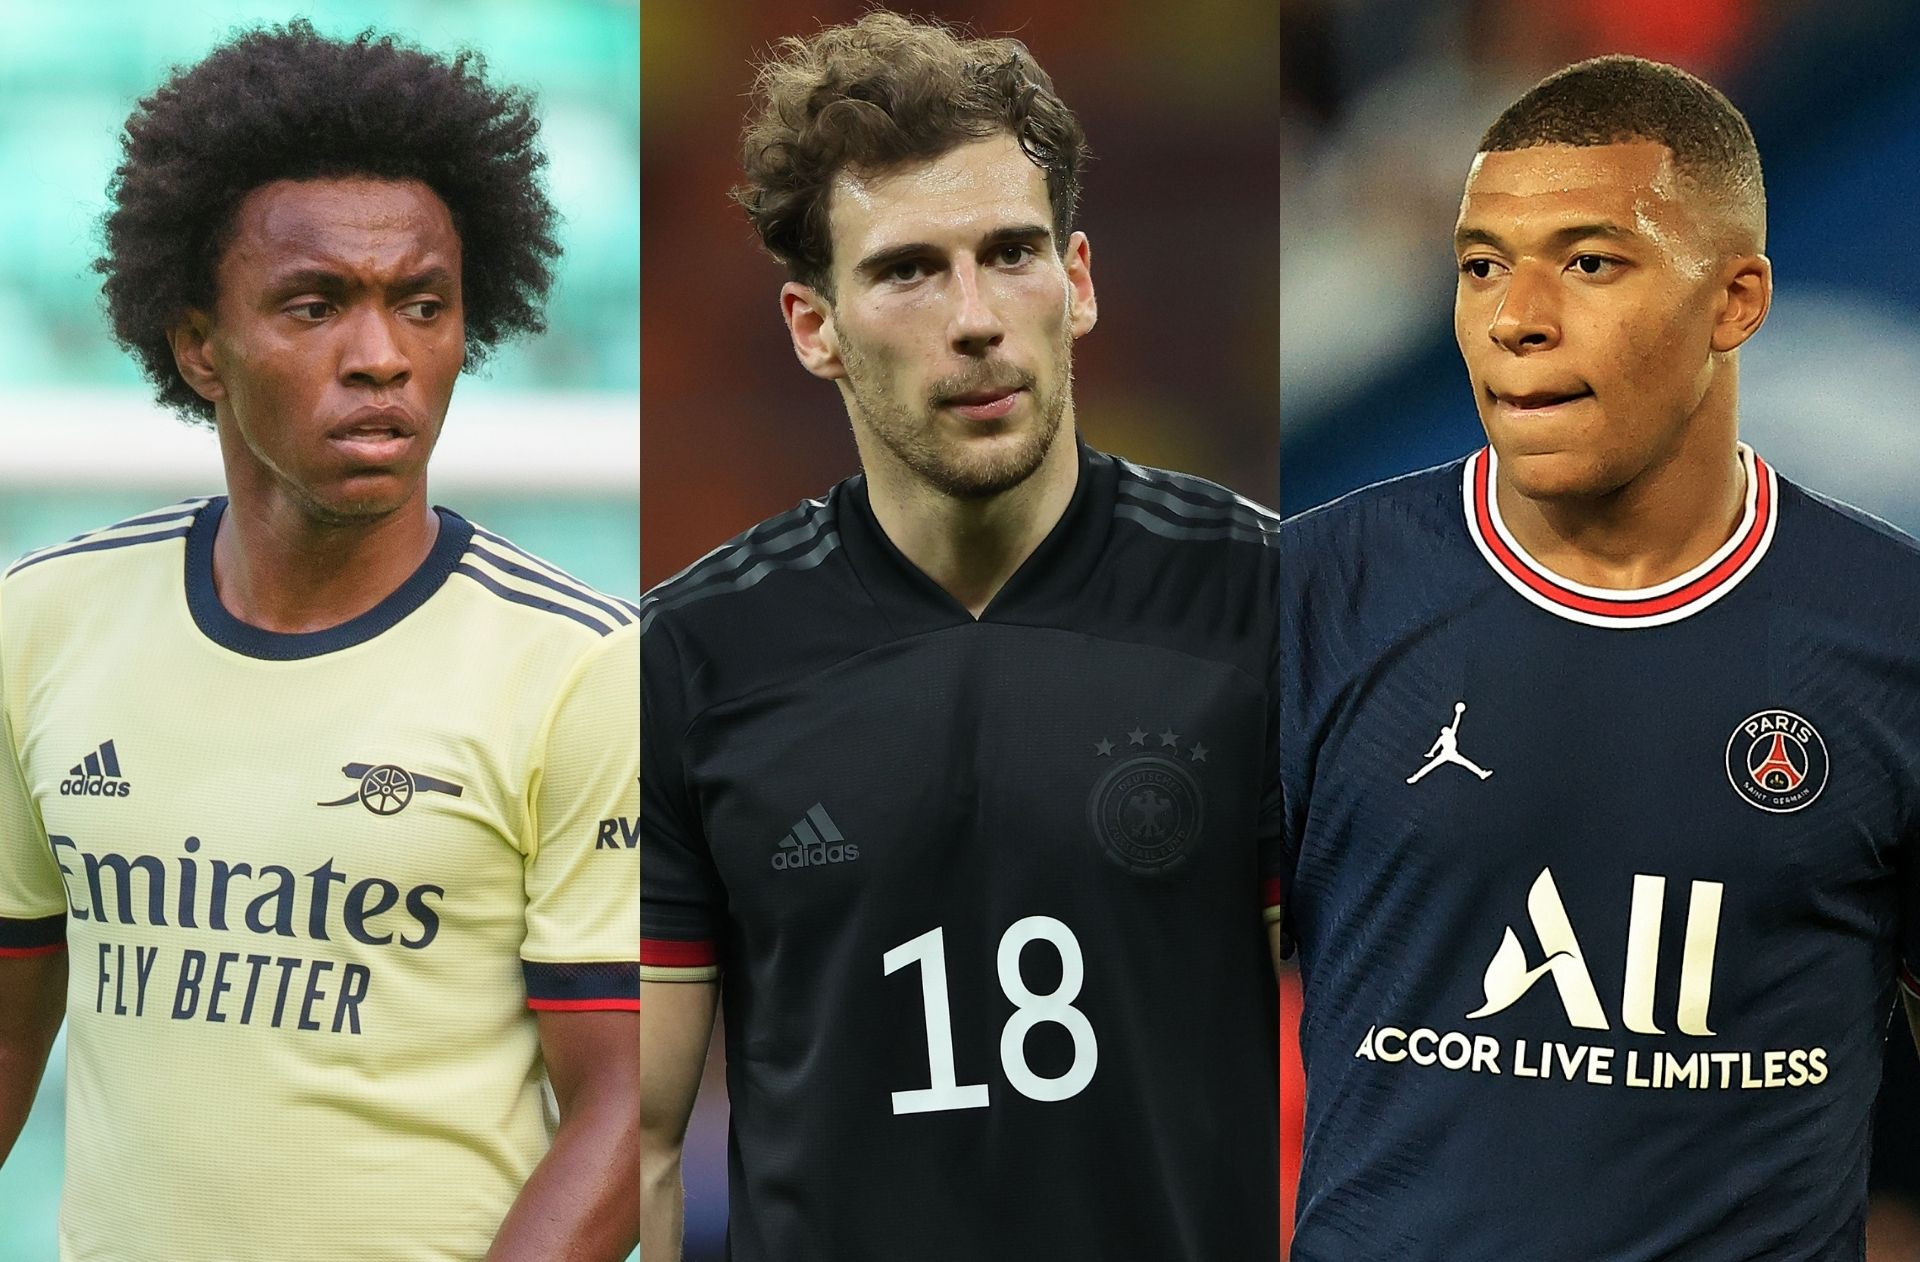 Saturday's transfer rumors - Arsenal put six players up for sale